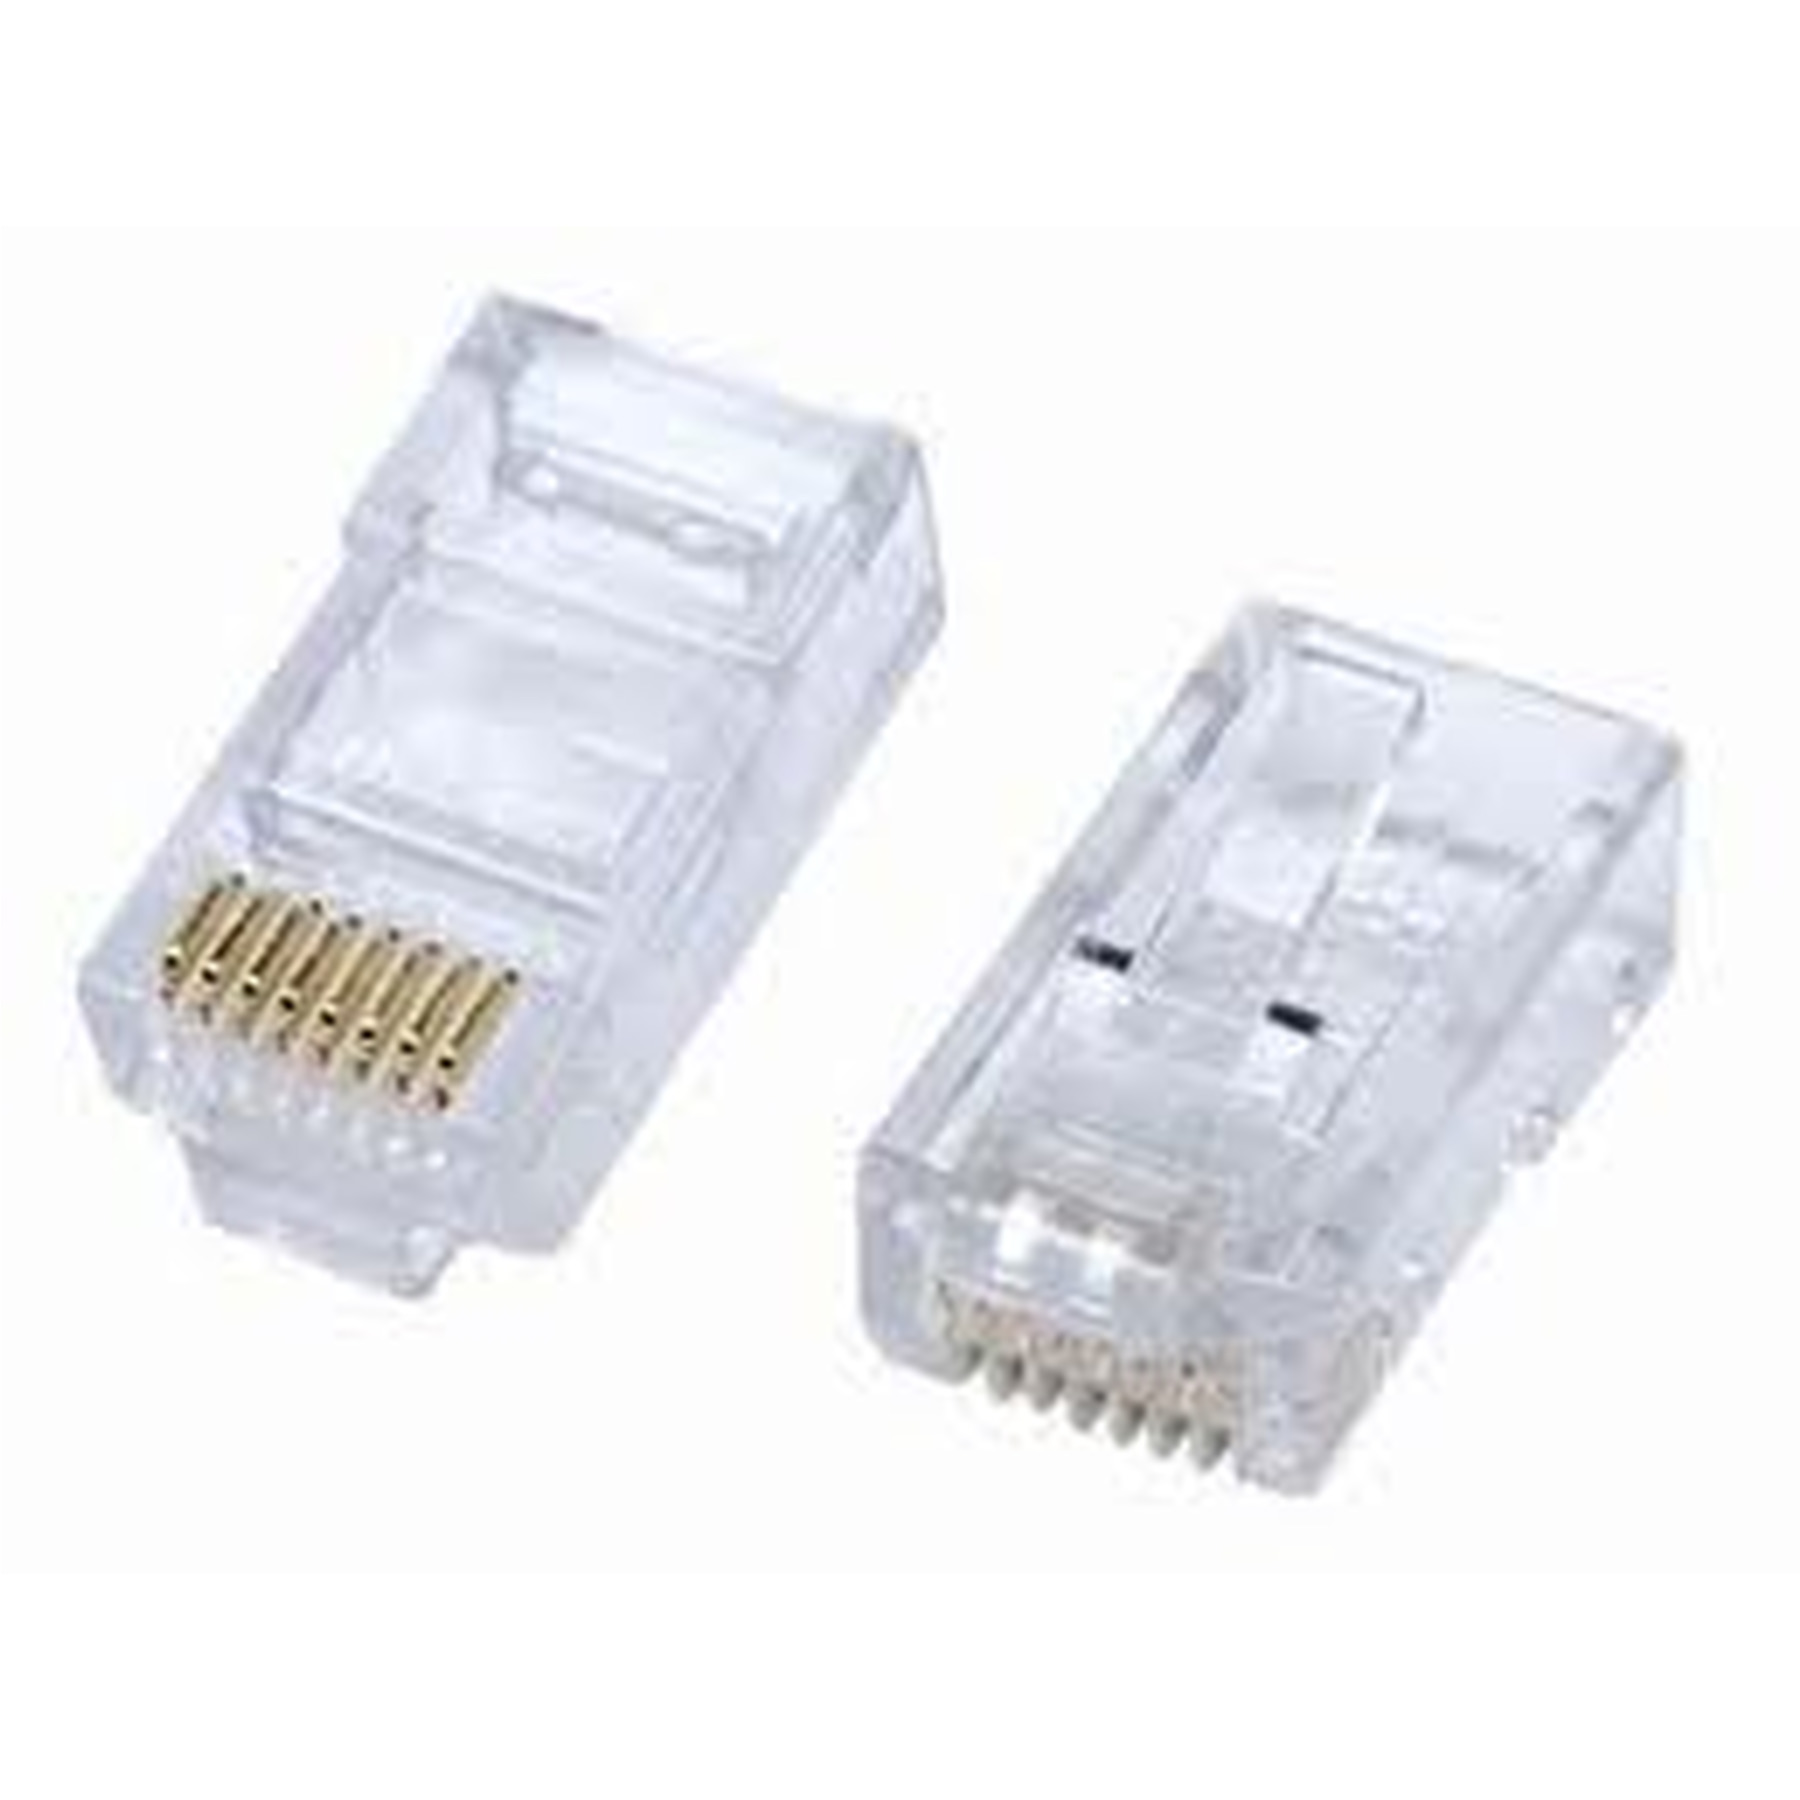 PV-RJ45CAT5Gold-50 Product Zoom